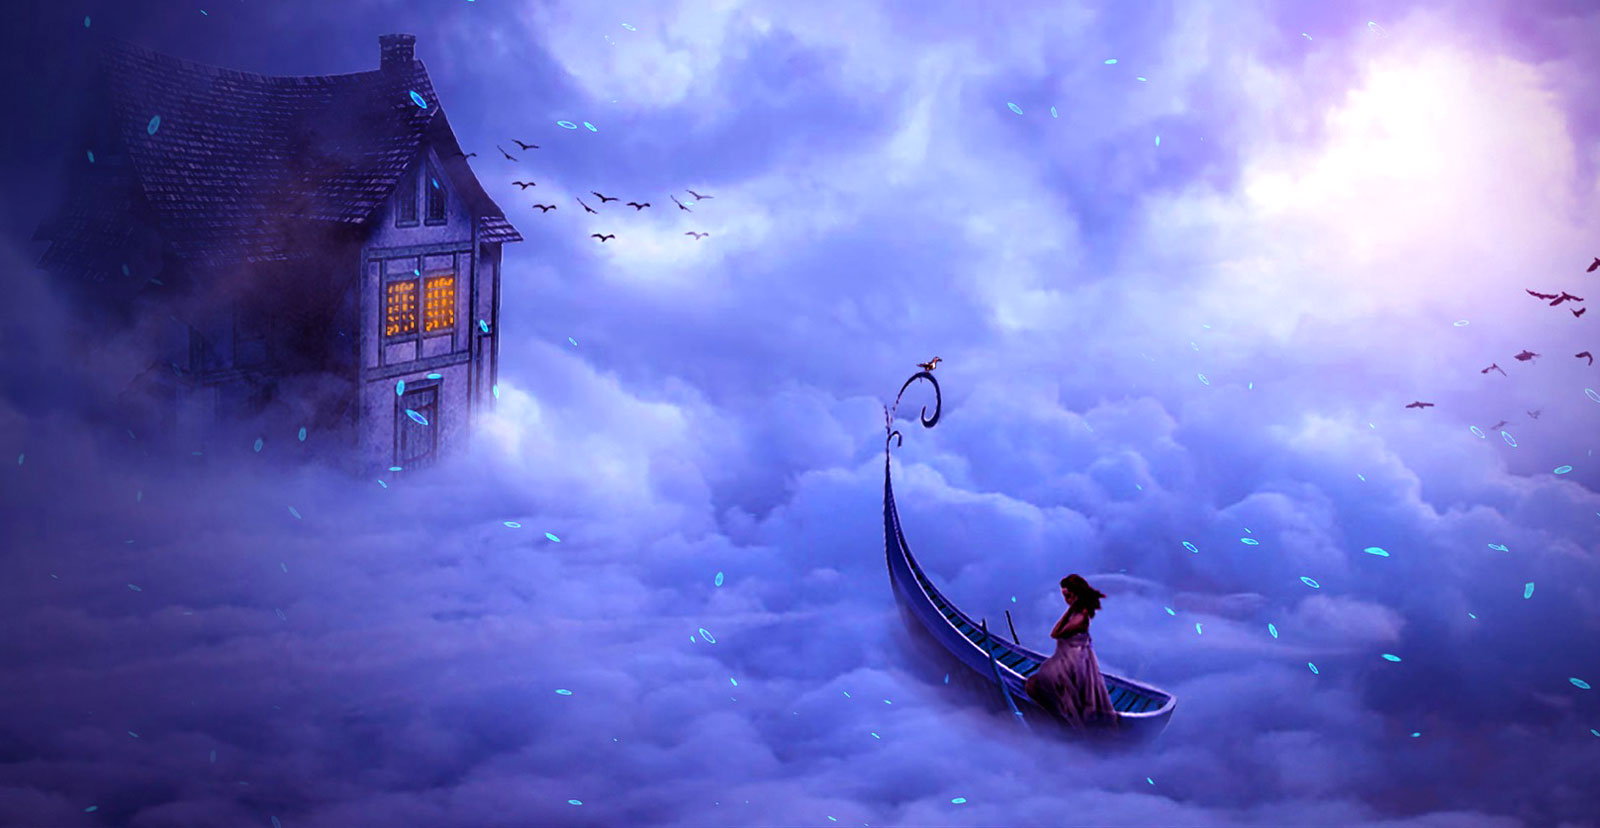 Types of dreams and interpreting dreams on whats your sign these types of dreams are when in the midst of our dream we are suddenly aware we are dreaming this awareness is quite magnificent malvernweather Image collections